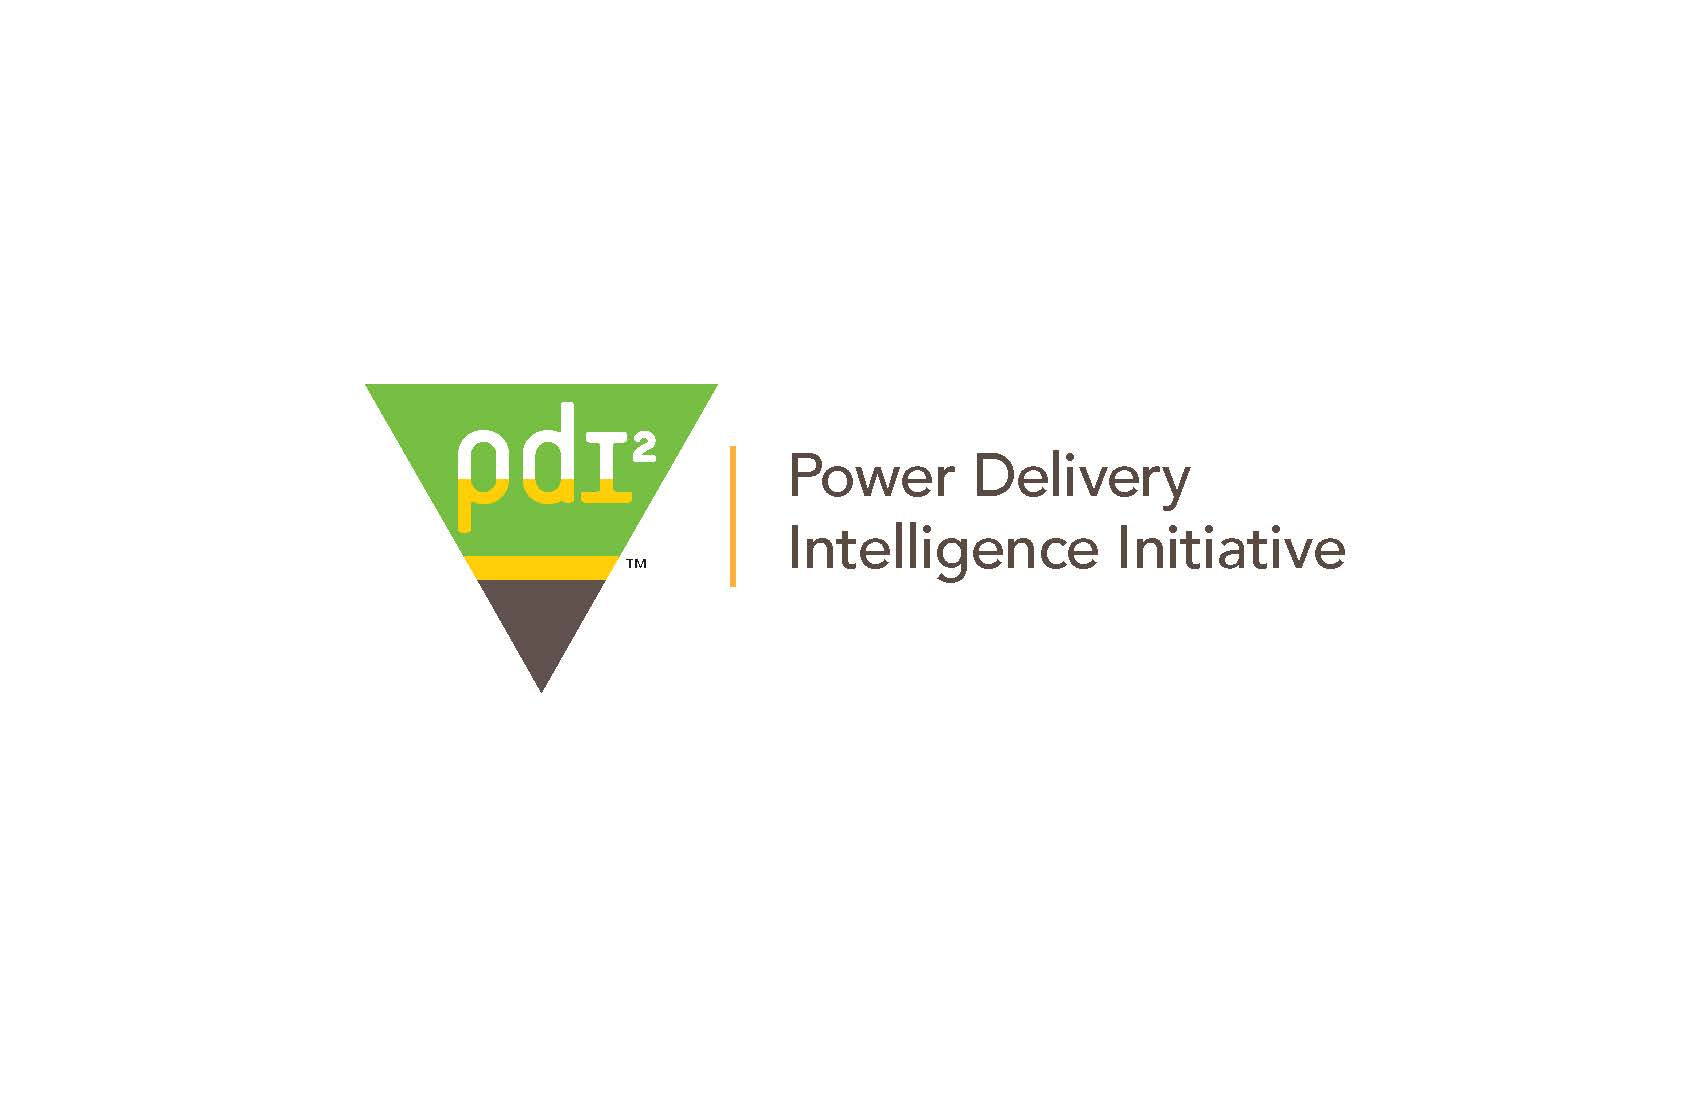 Power Delivery Intelligence Initiative Formed